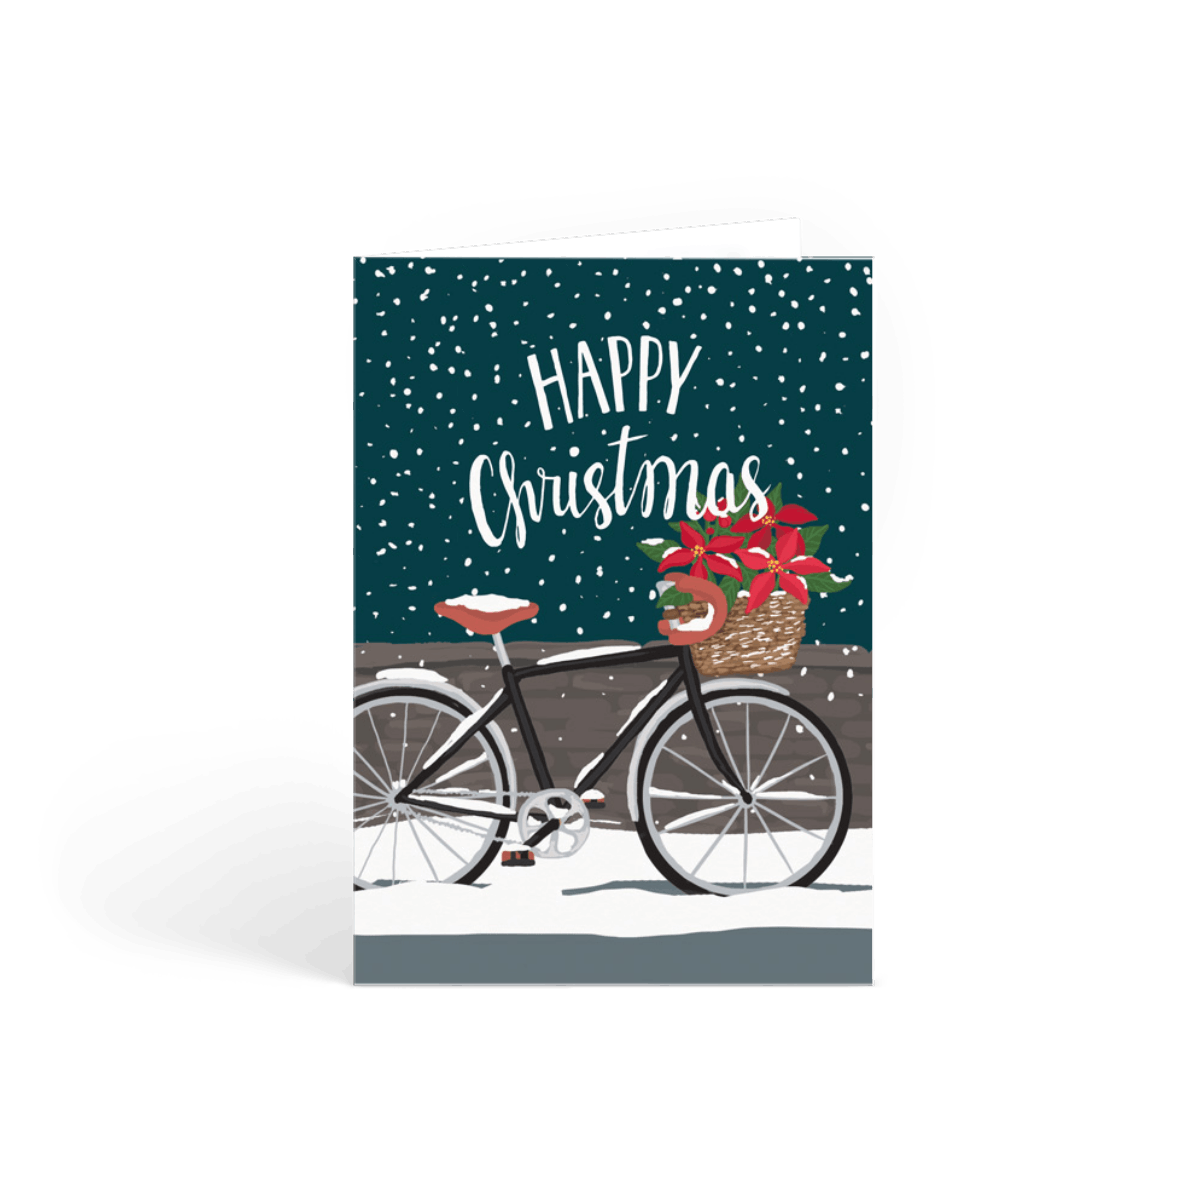 Https%3a%2f%2fwww.papier.com%2fproduct image%2f3569%2f2%2fchristmas bicycle 953 front 1567799458.png?ixlib=rb 1.1